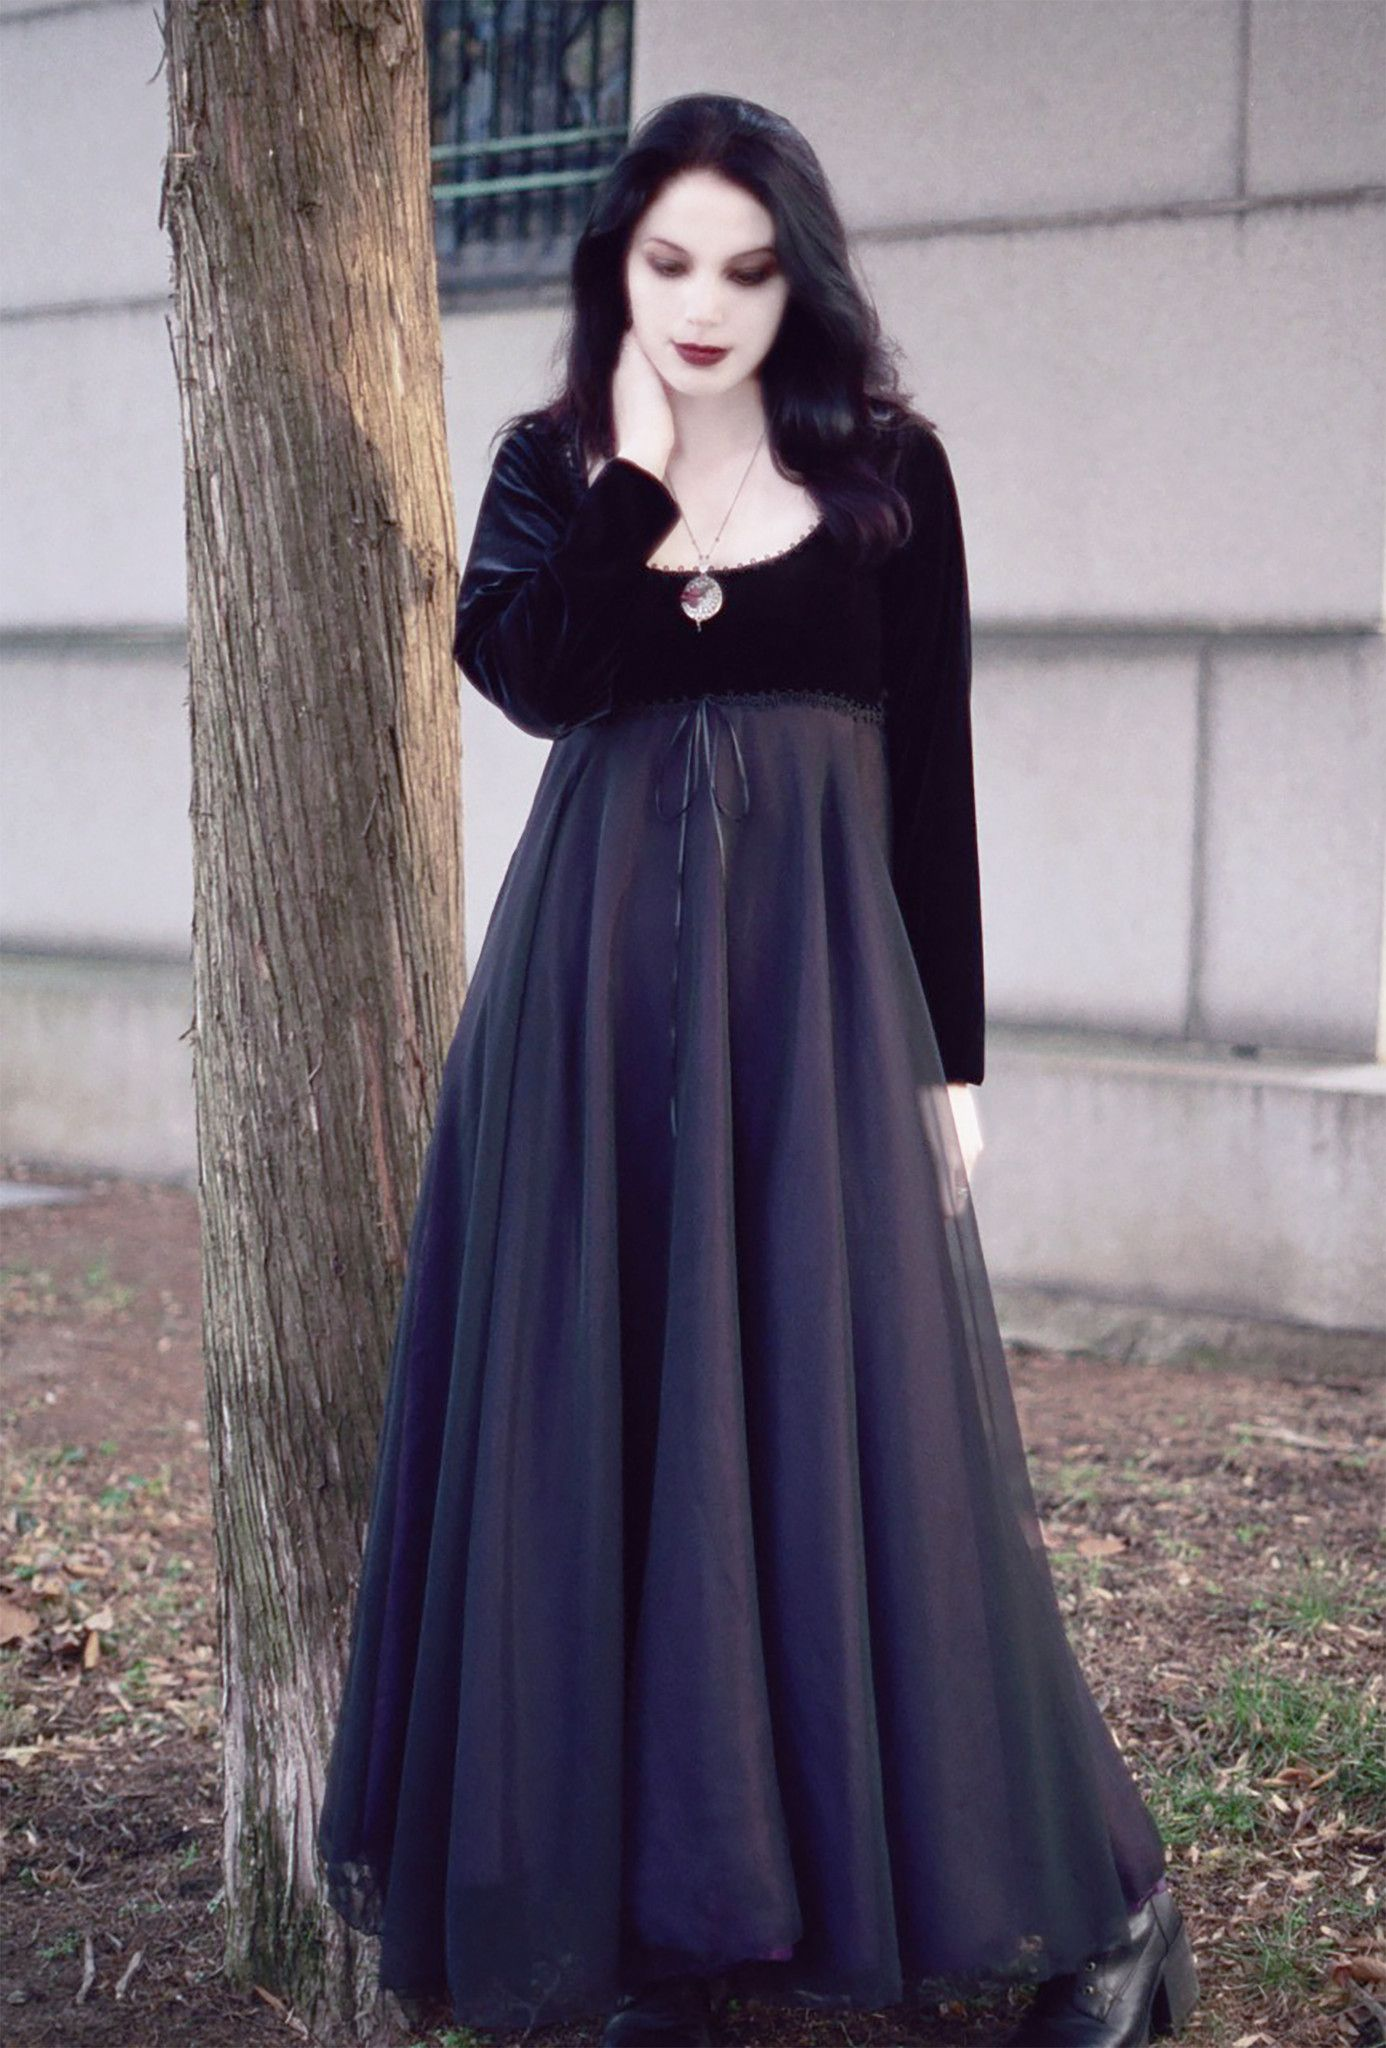 Coriandre Romantic Gothic Wedding Dress | Rose Mortem Shades of ...